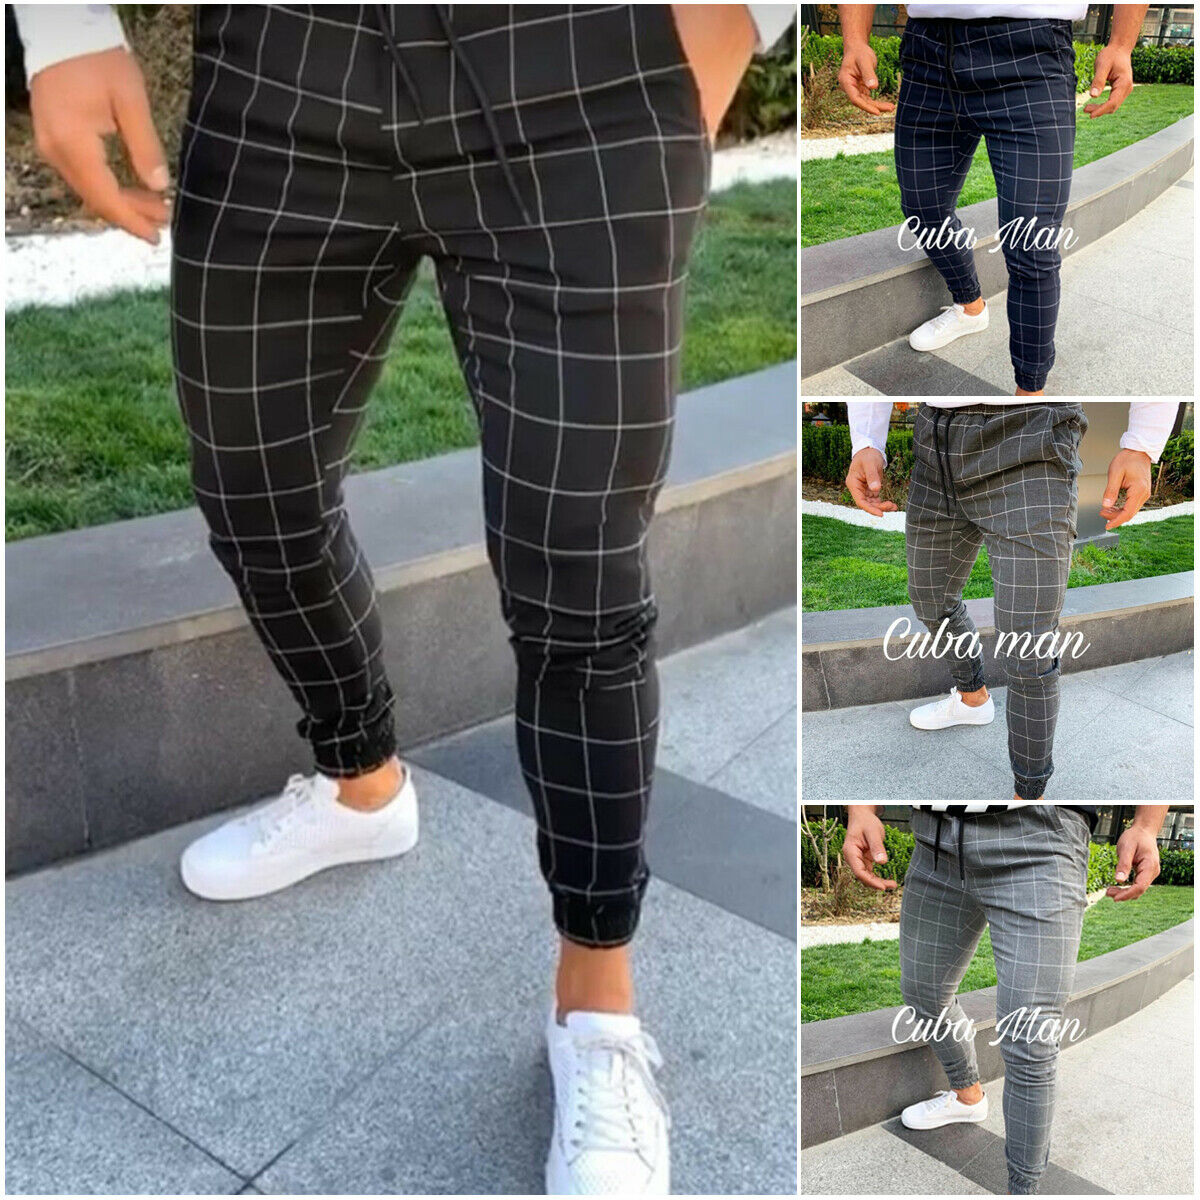 Hot Men's Sport Pants Long Plaid Tracksuit Skinny Elastic Fit Workout Joggers Casual Sweatpants Male Casual Trousers M-3XL